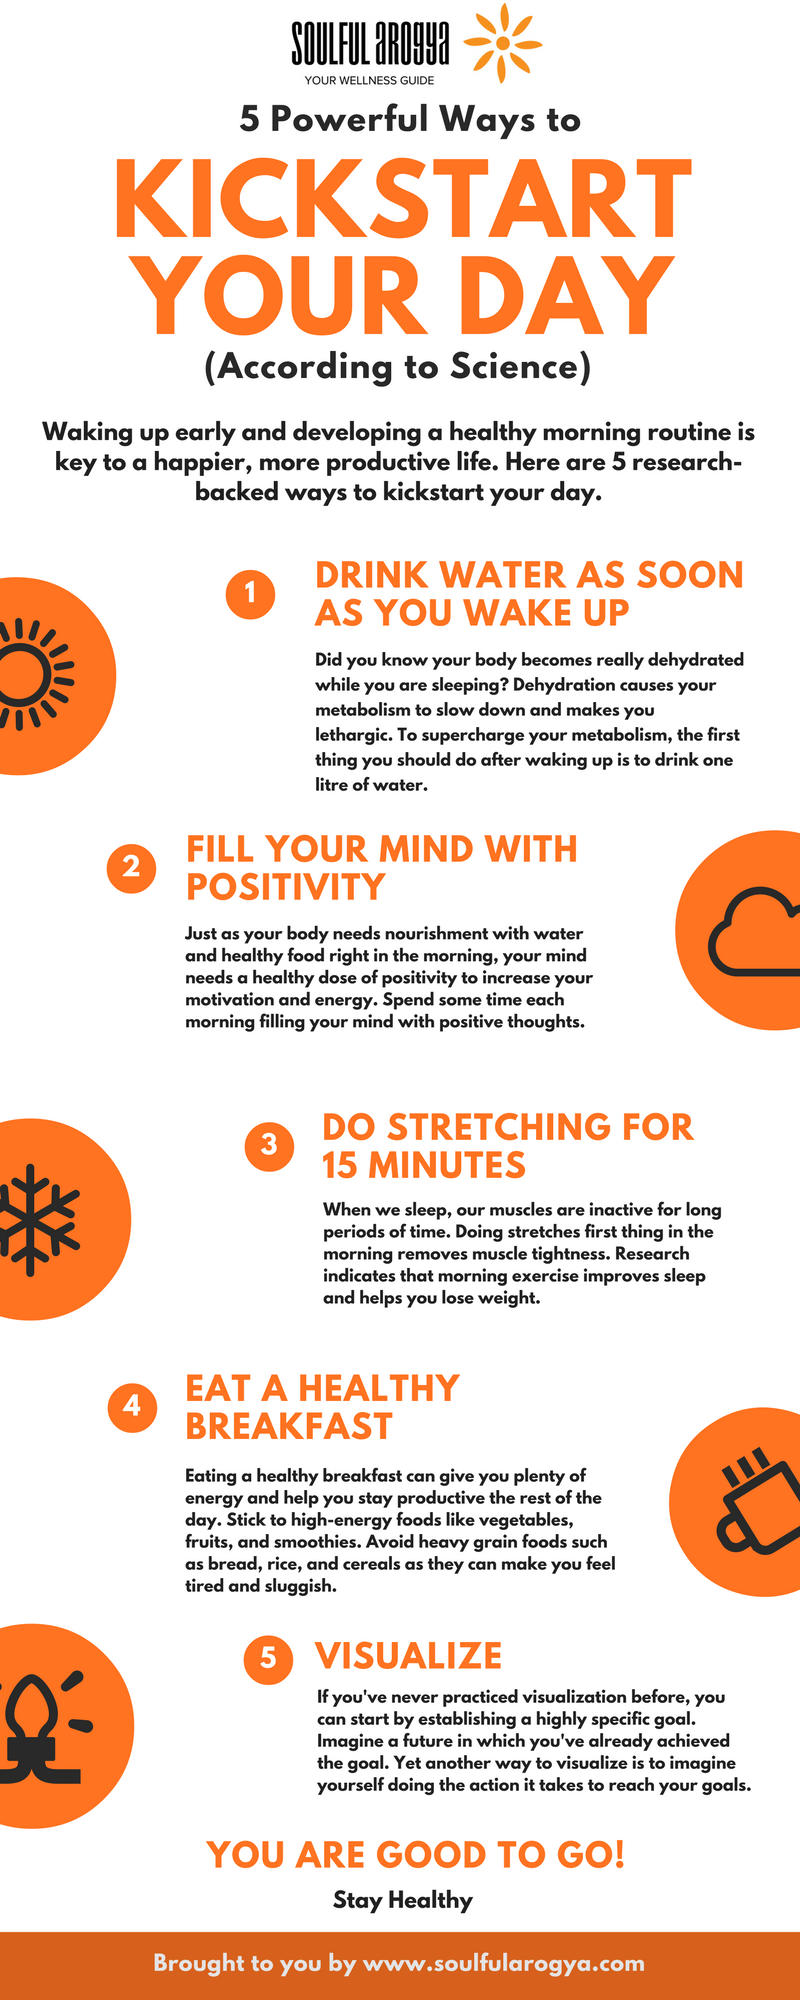 5 Powerful Ways to Kickstart Your Day #infographic